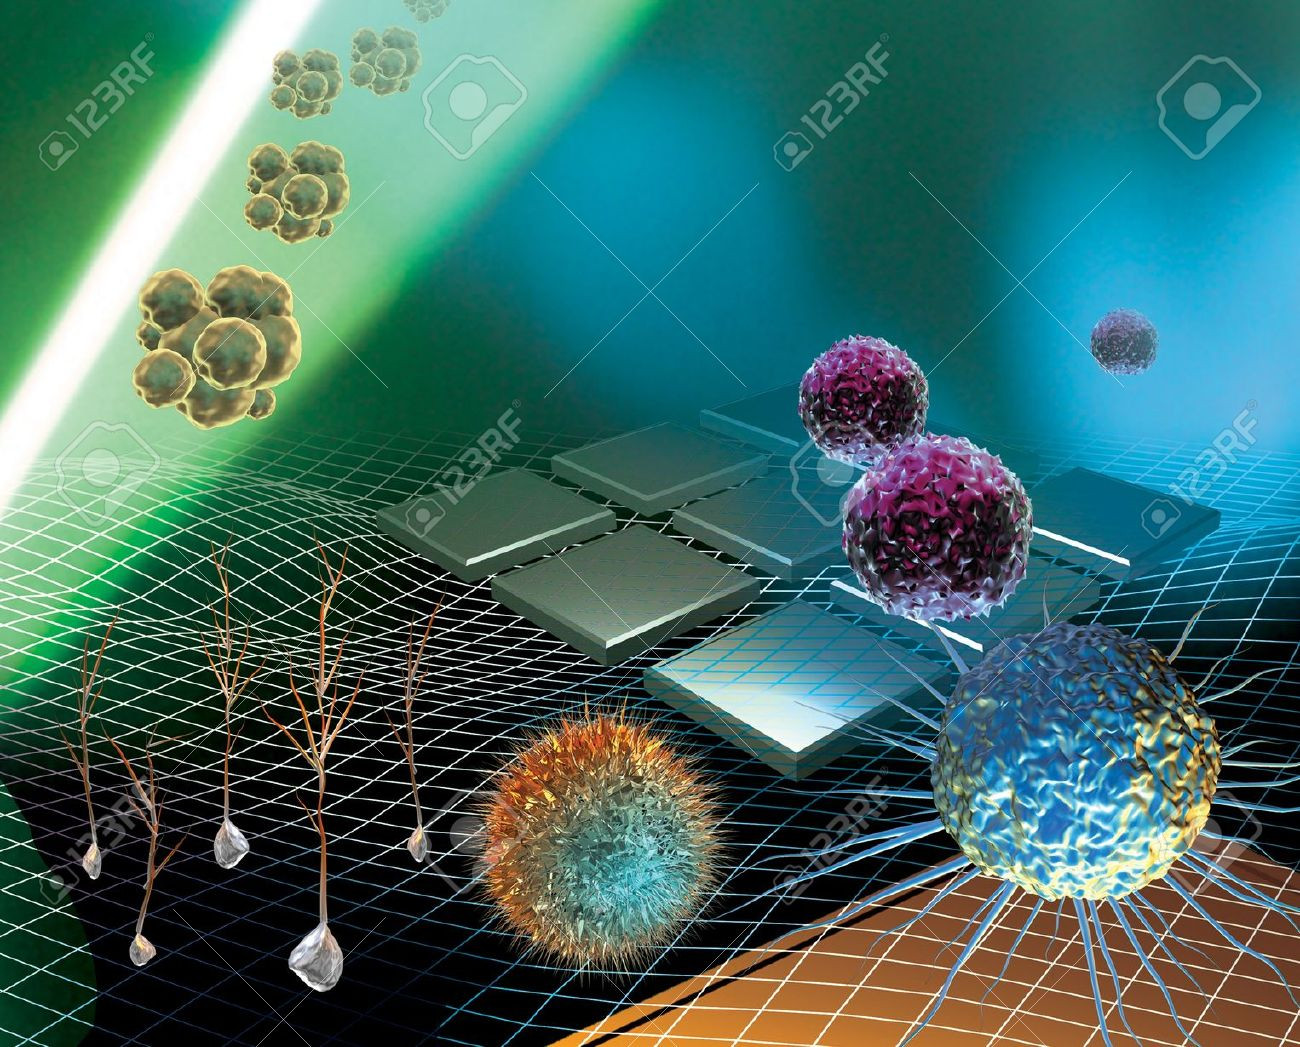 12544872-3D-rendered-conceptualization-of-stem-cell-research-Stock-Photo.jpg